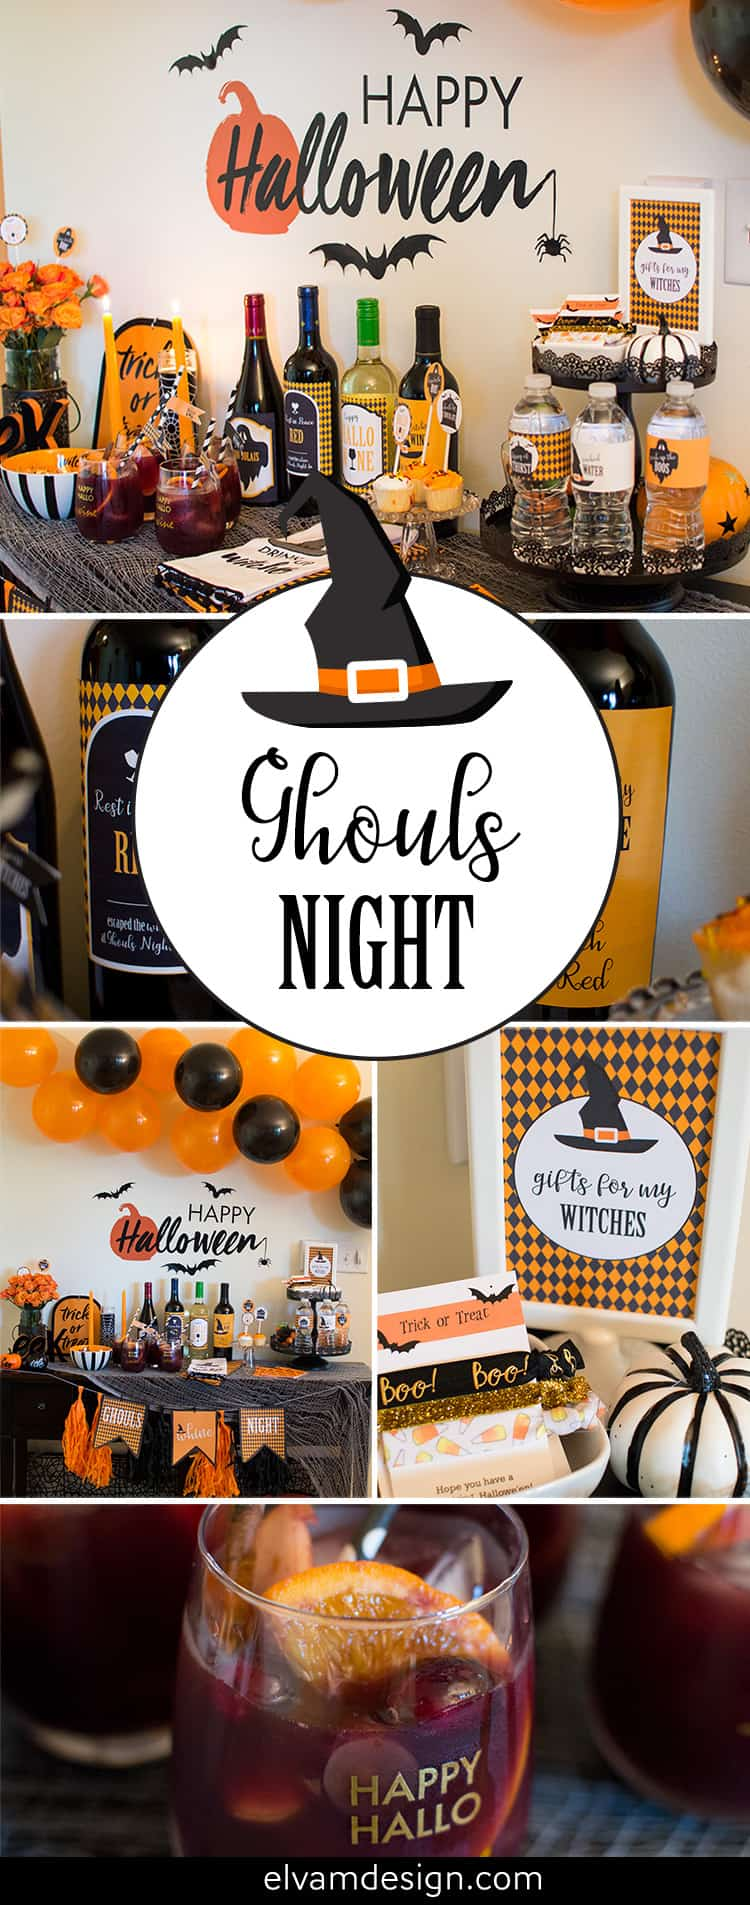 Check out this Ghouls Night Halloween Party by Elva M Design Studio.